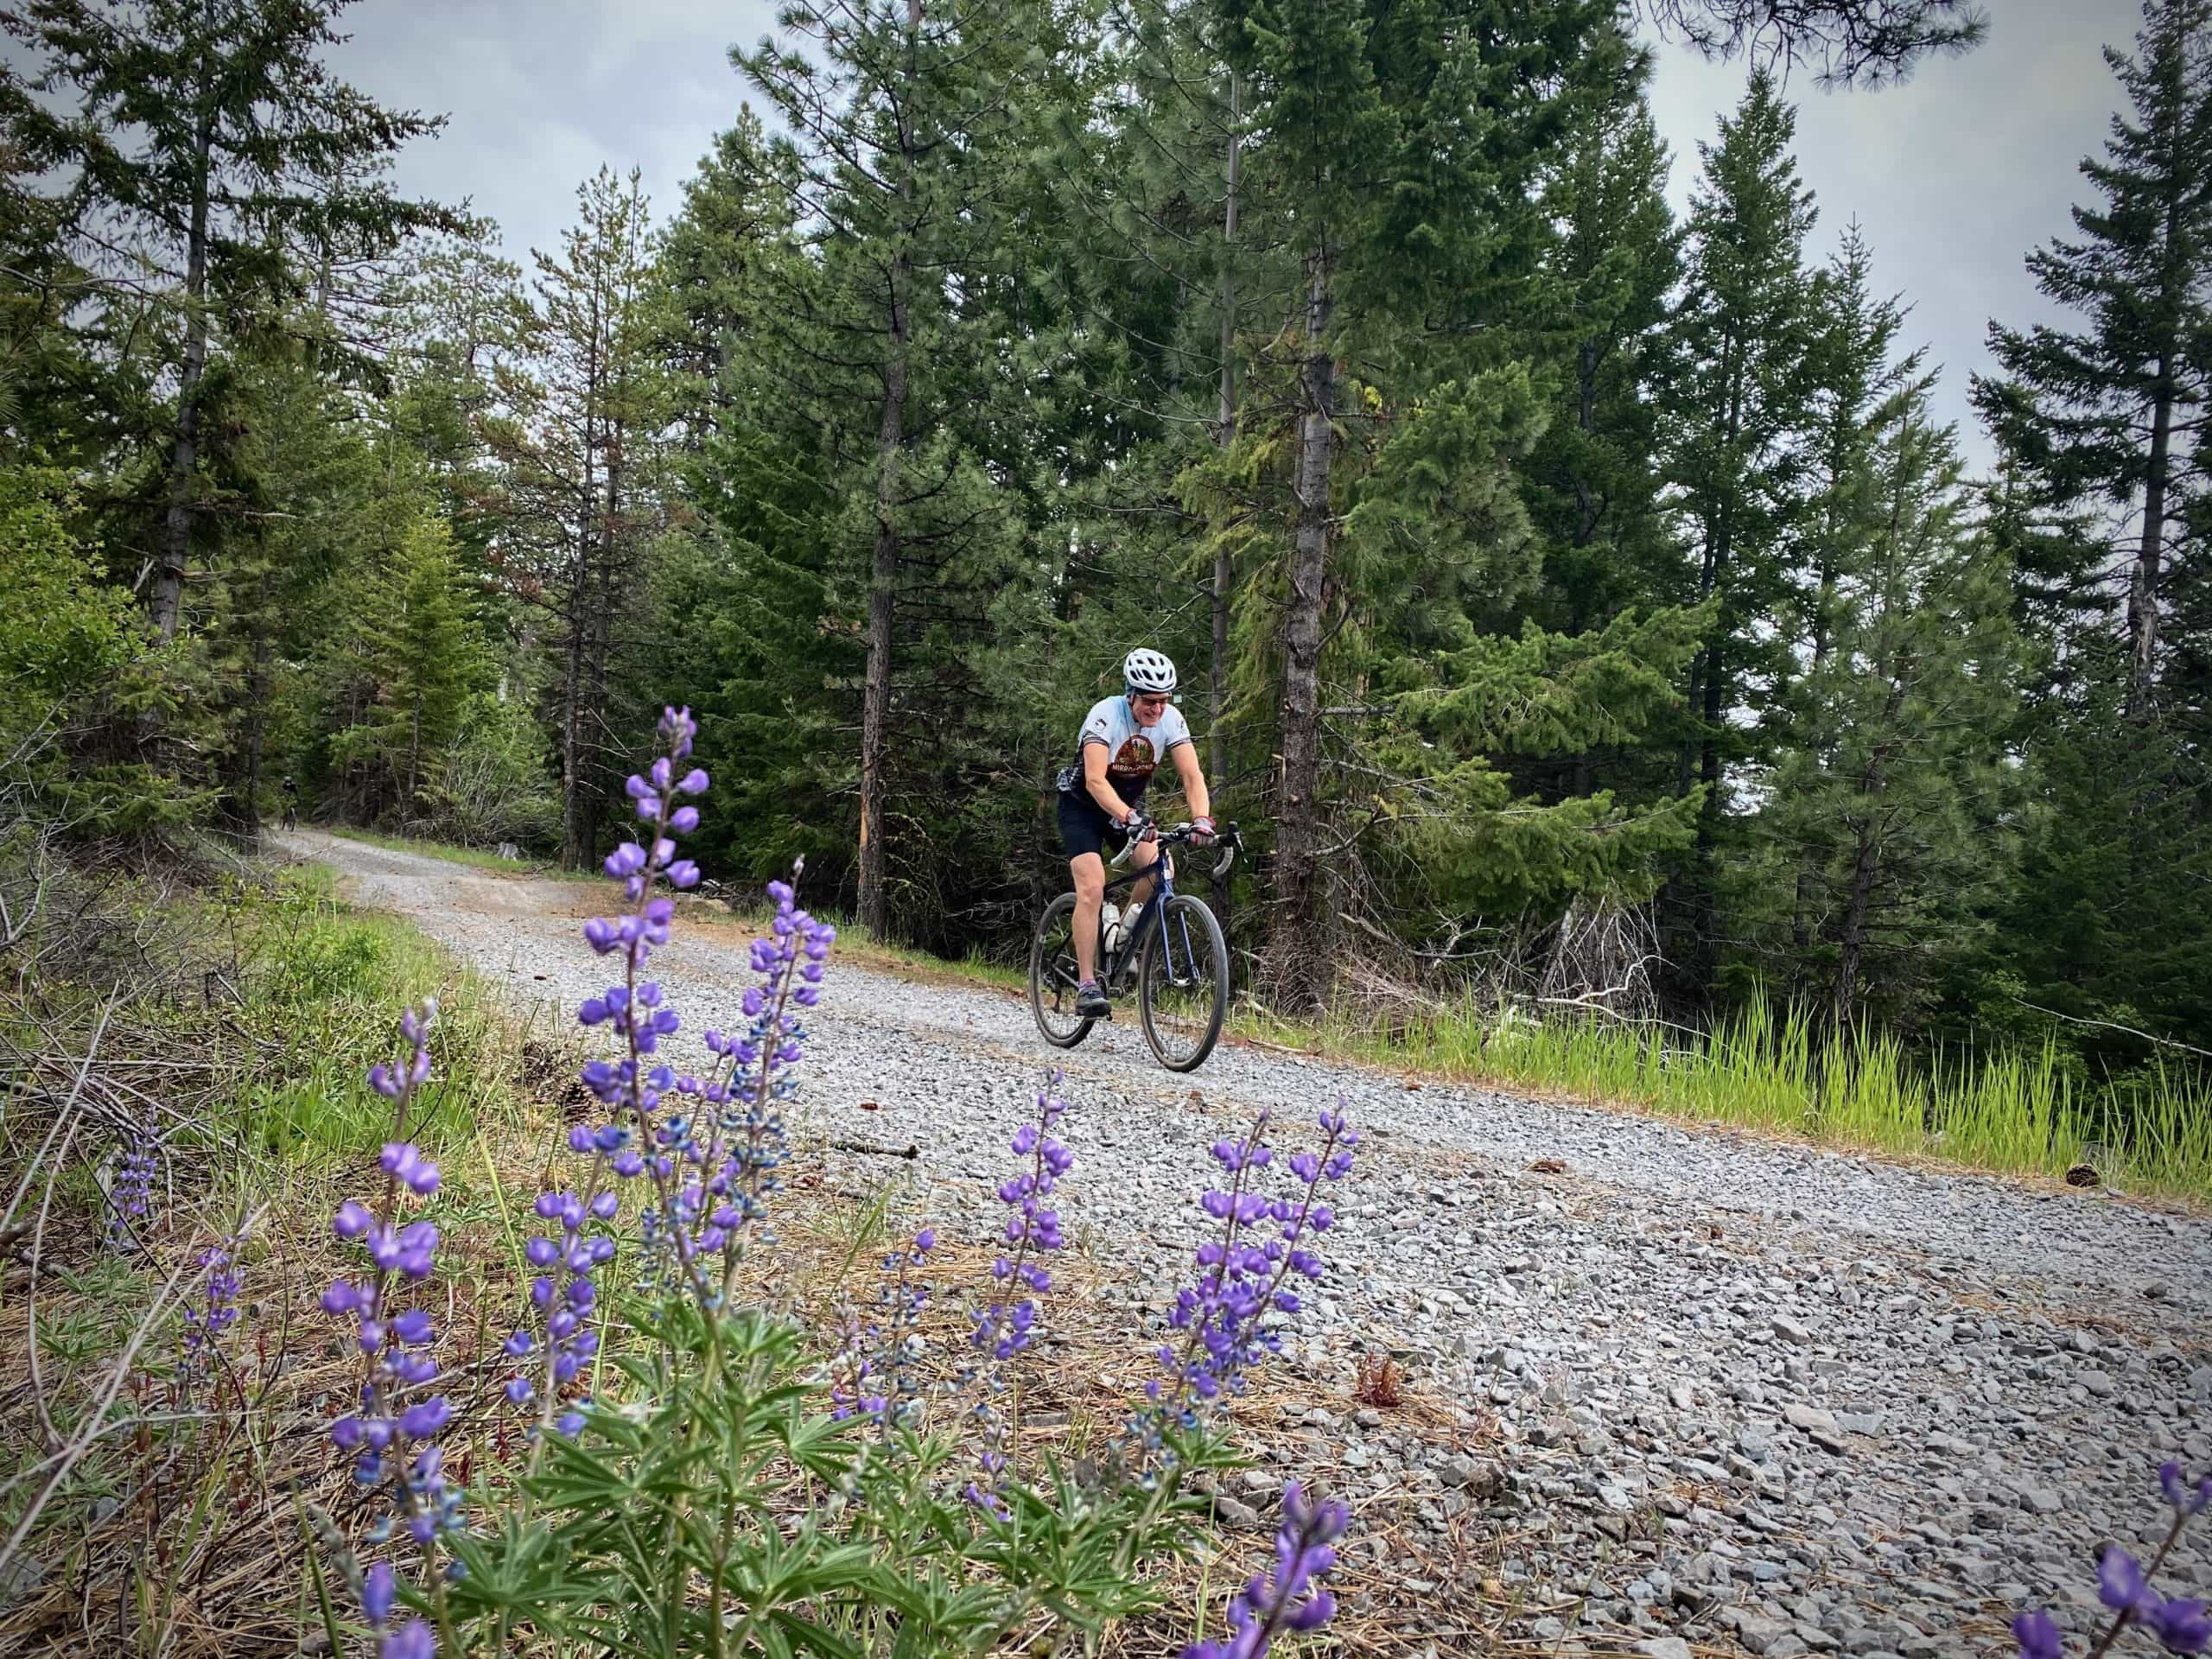 Cyclist on gray gravel road with purple flowers in foreground in Mt Hood National Forest.